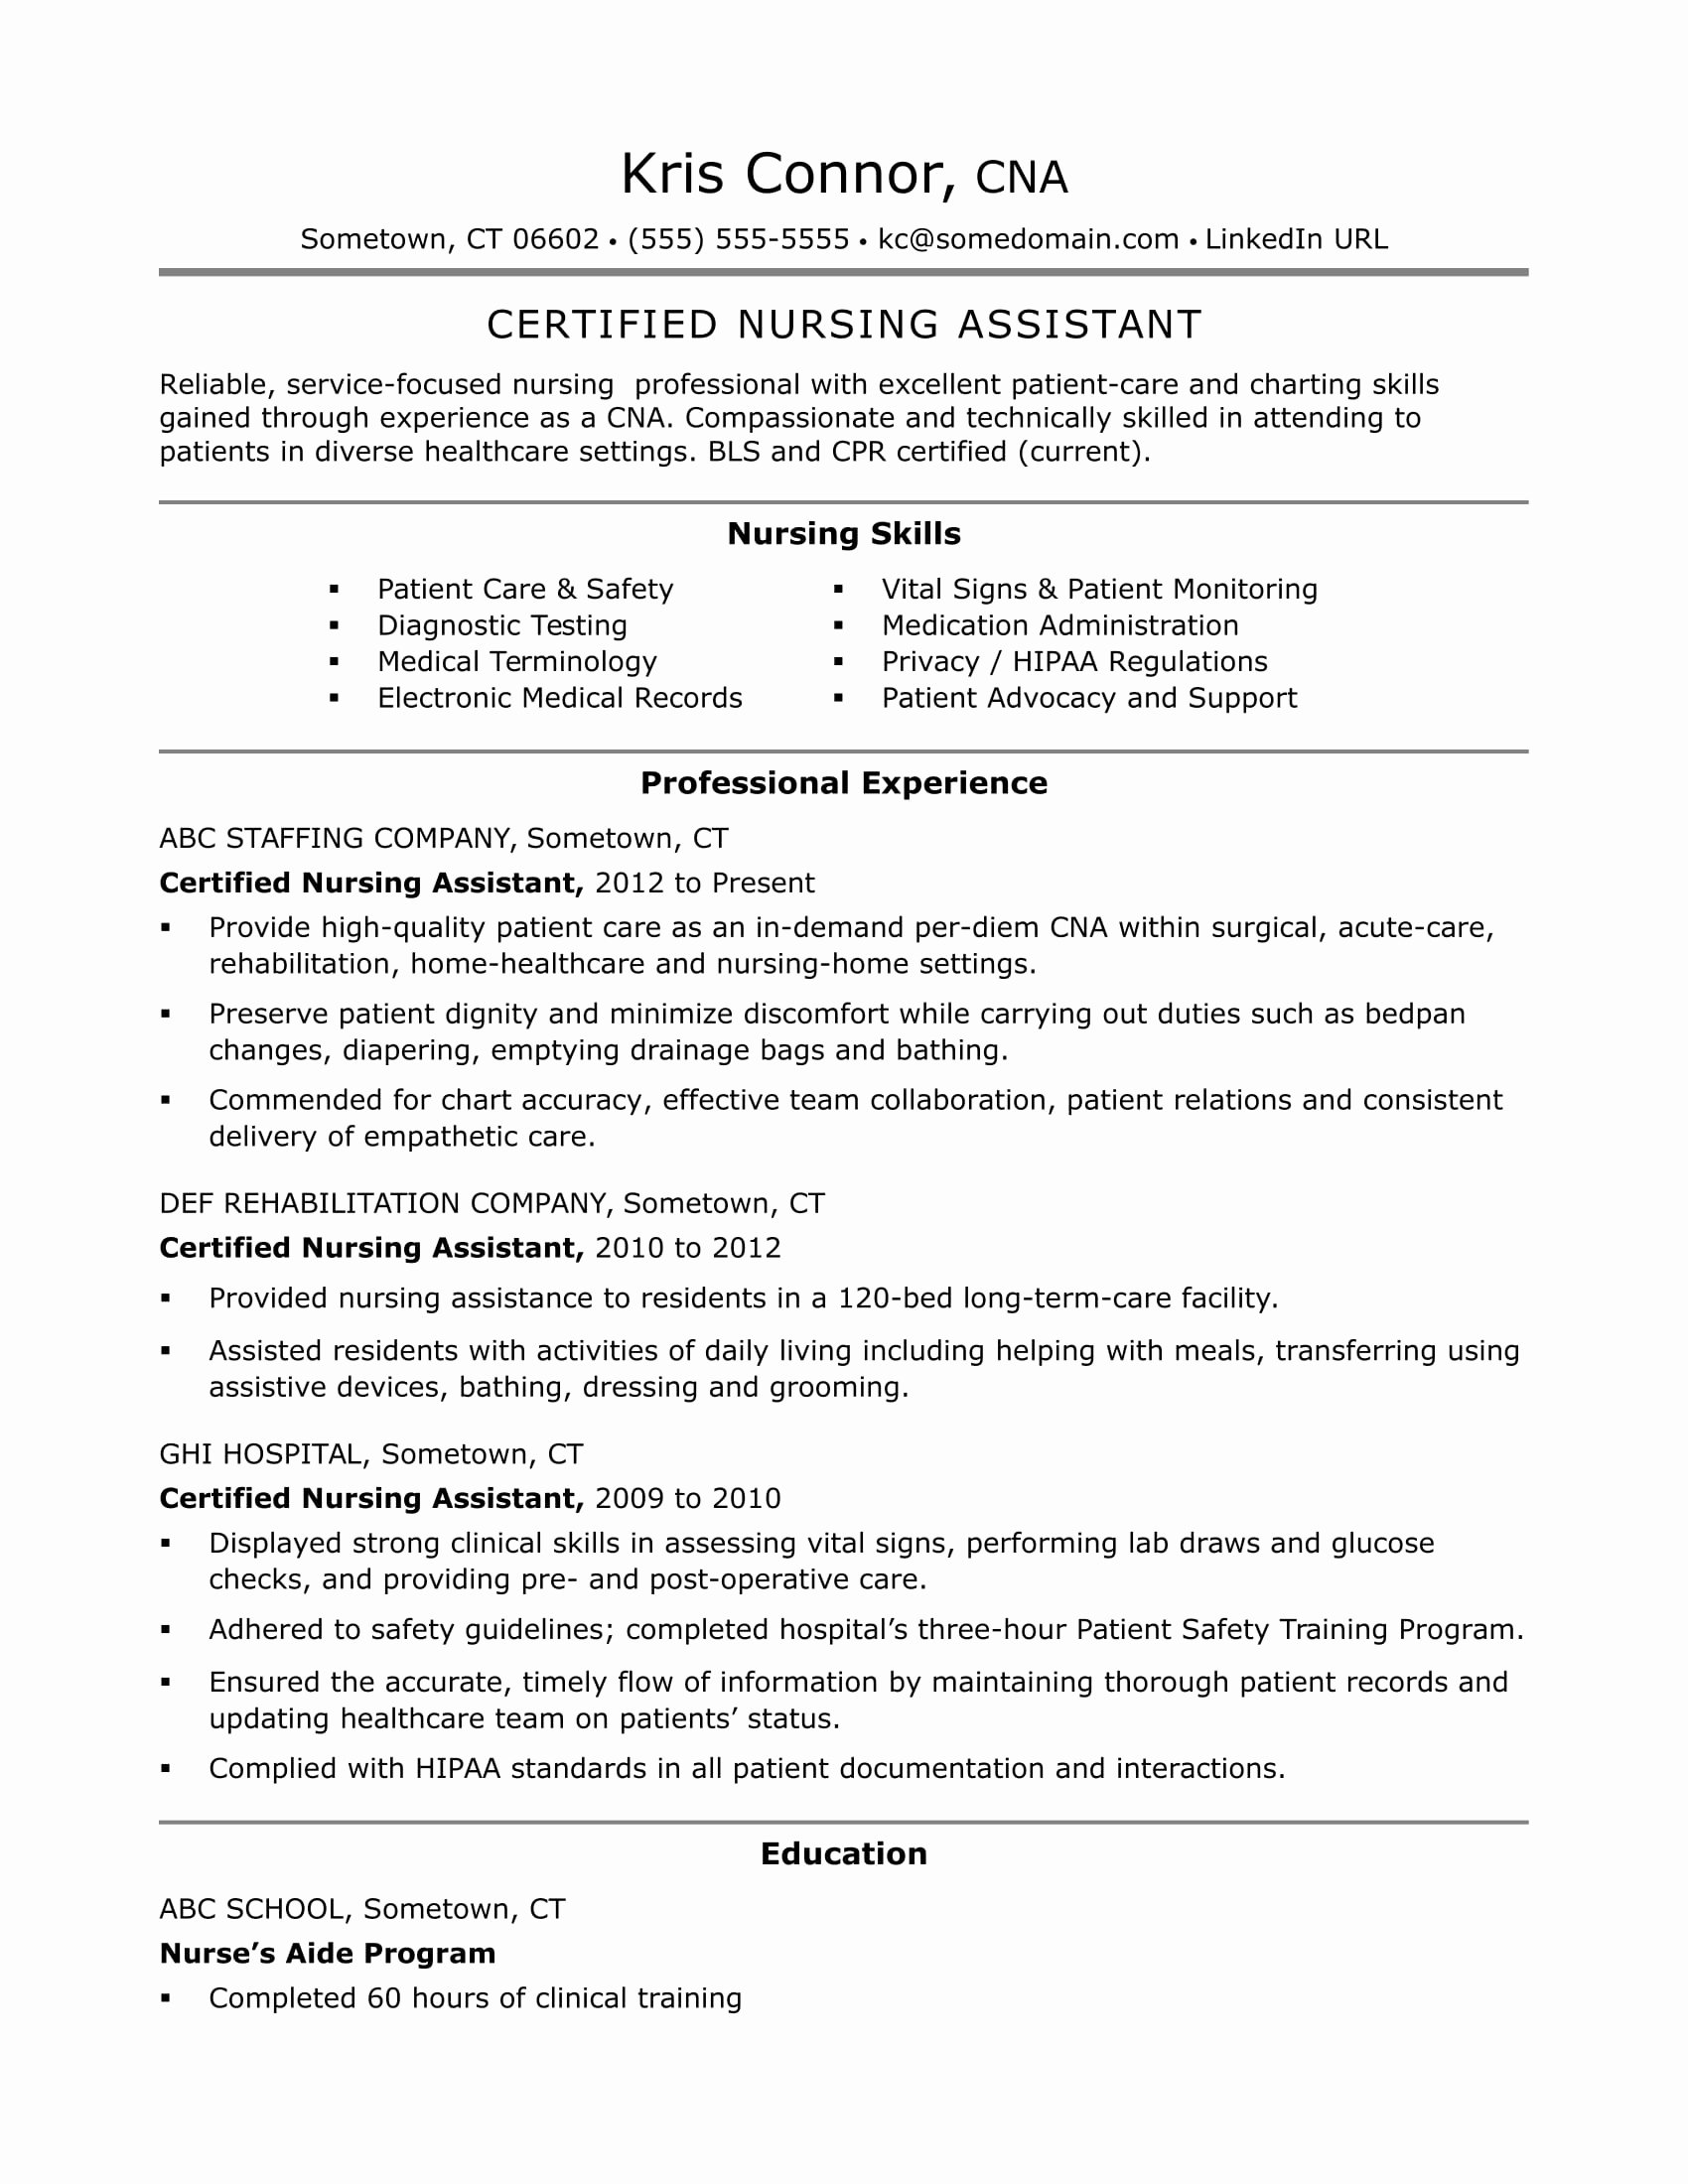 sample resume certified nursing assistant